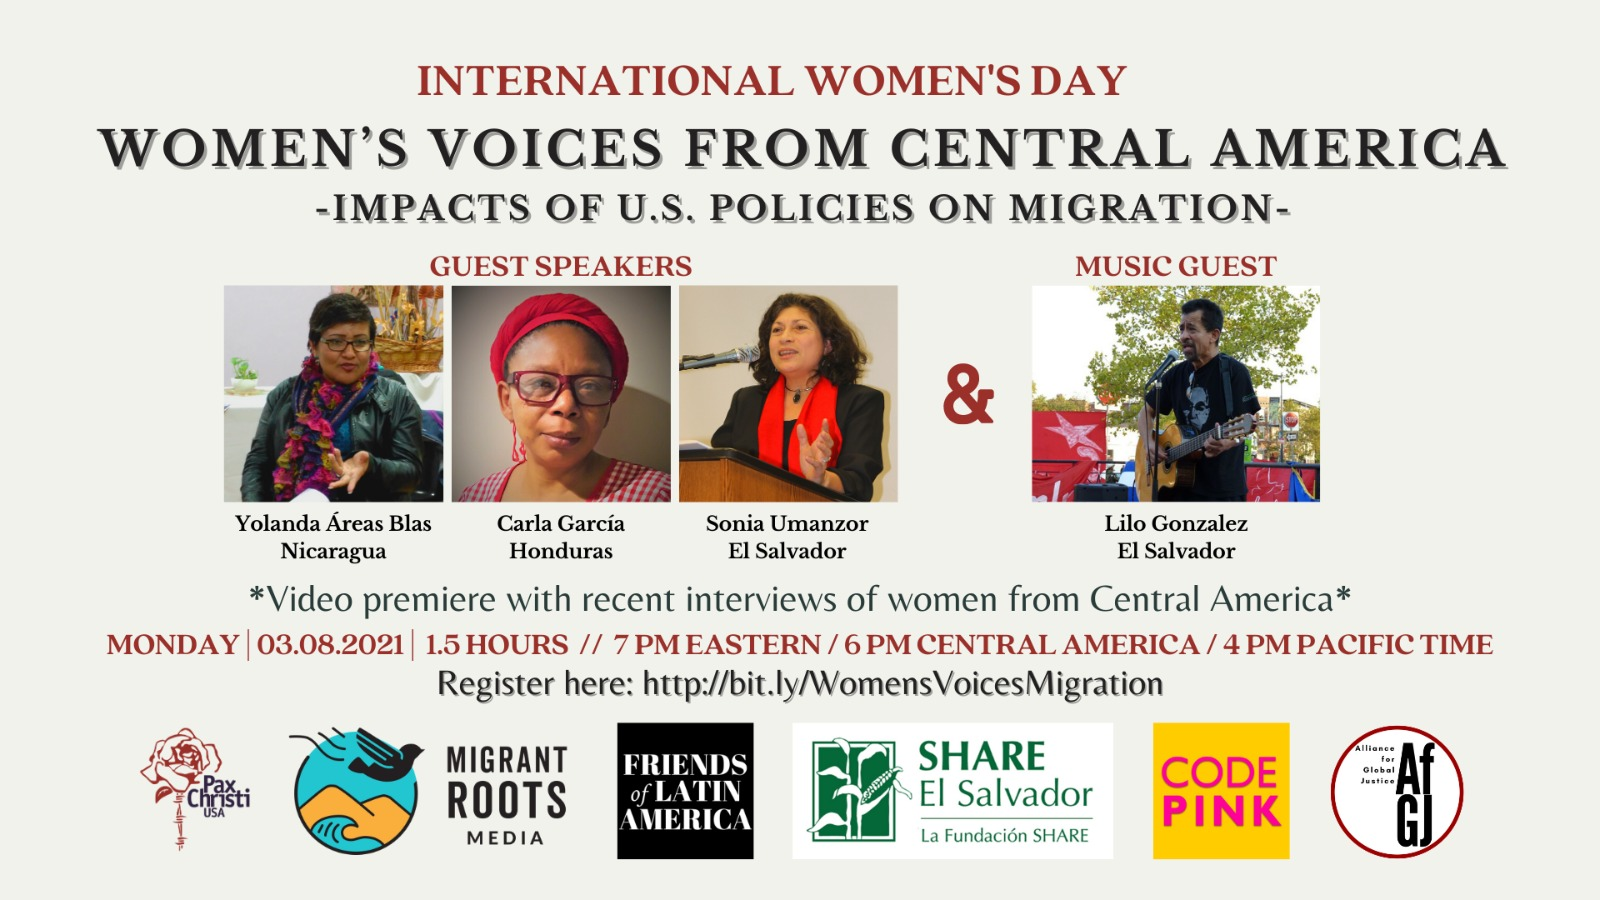 Women's Voices from Central America: Impacts of US Policies on Migration